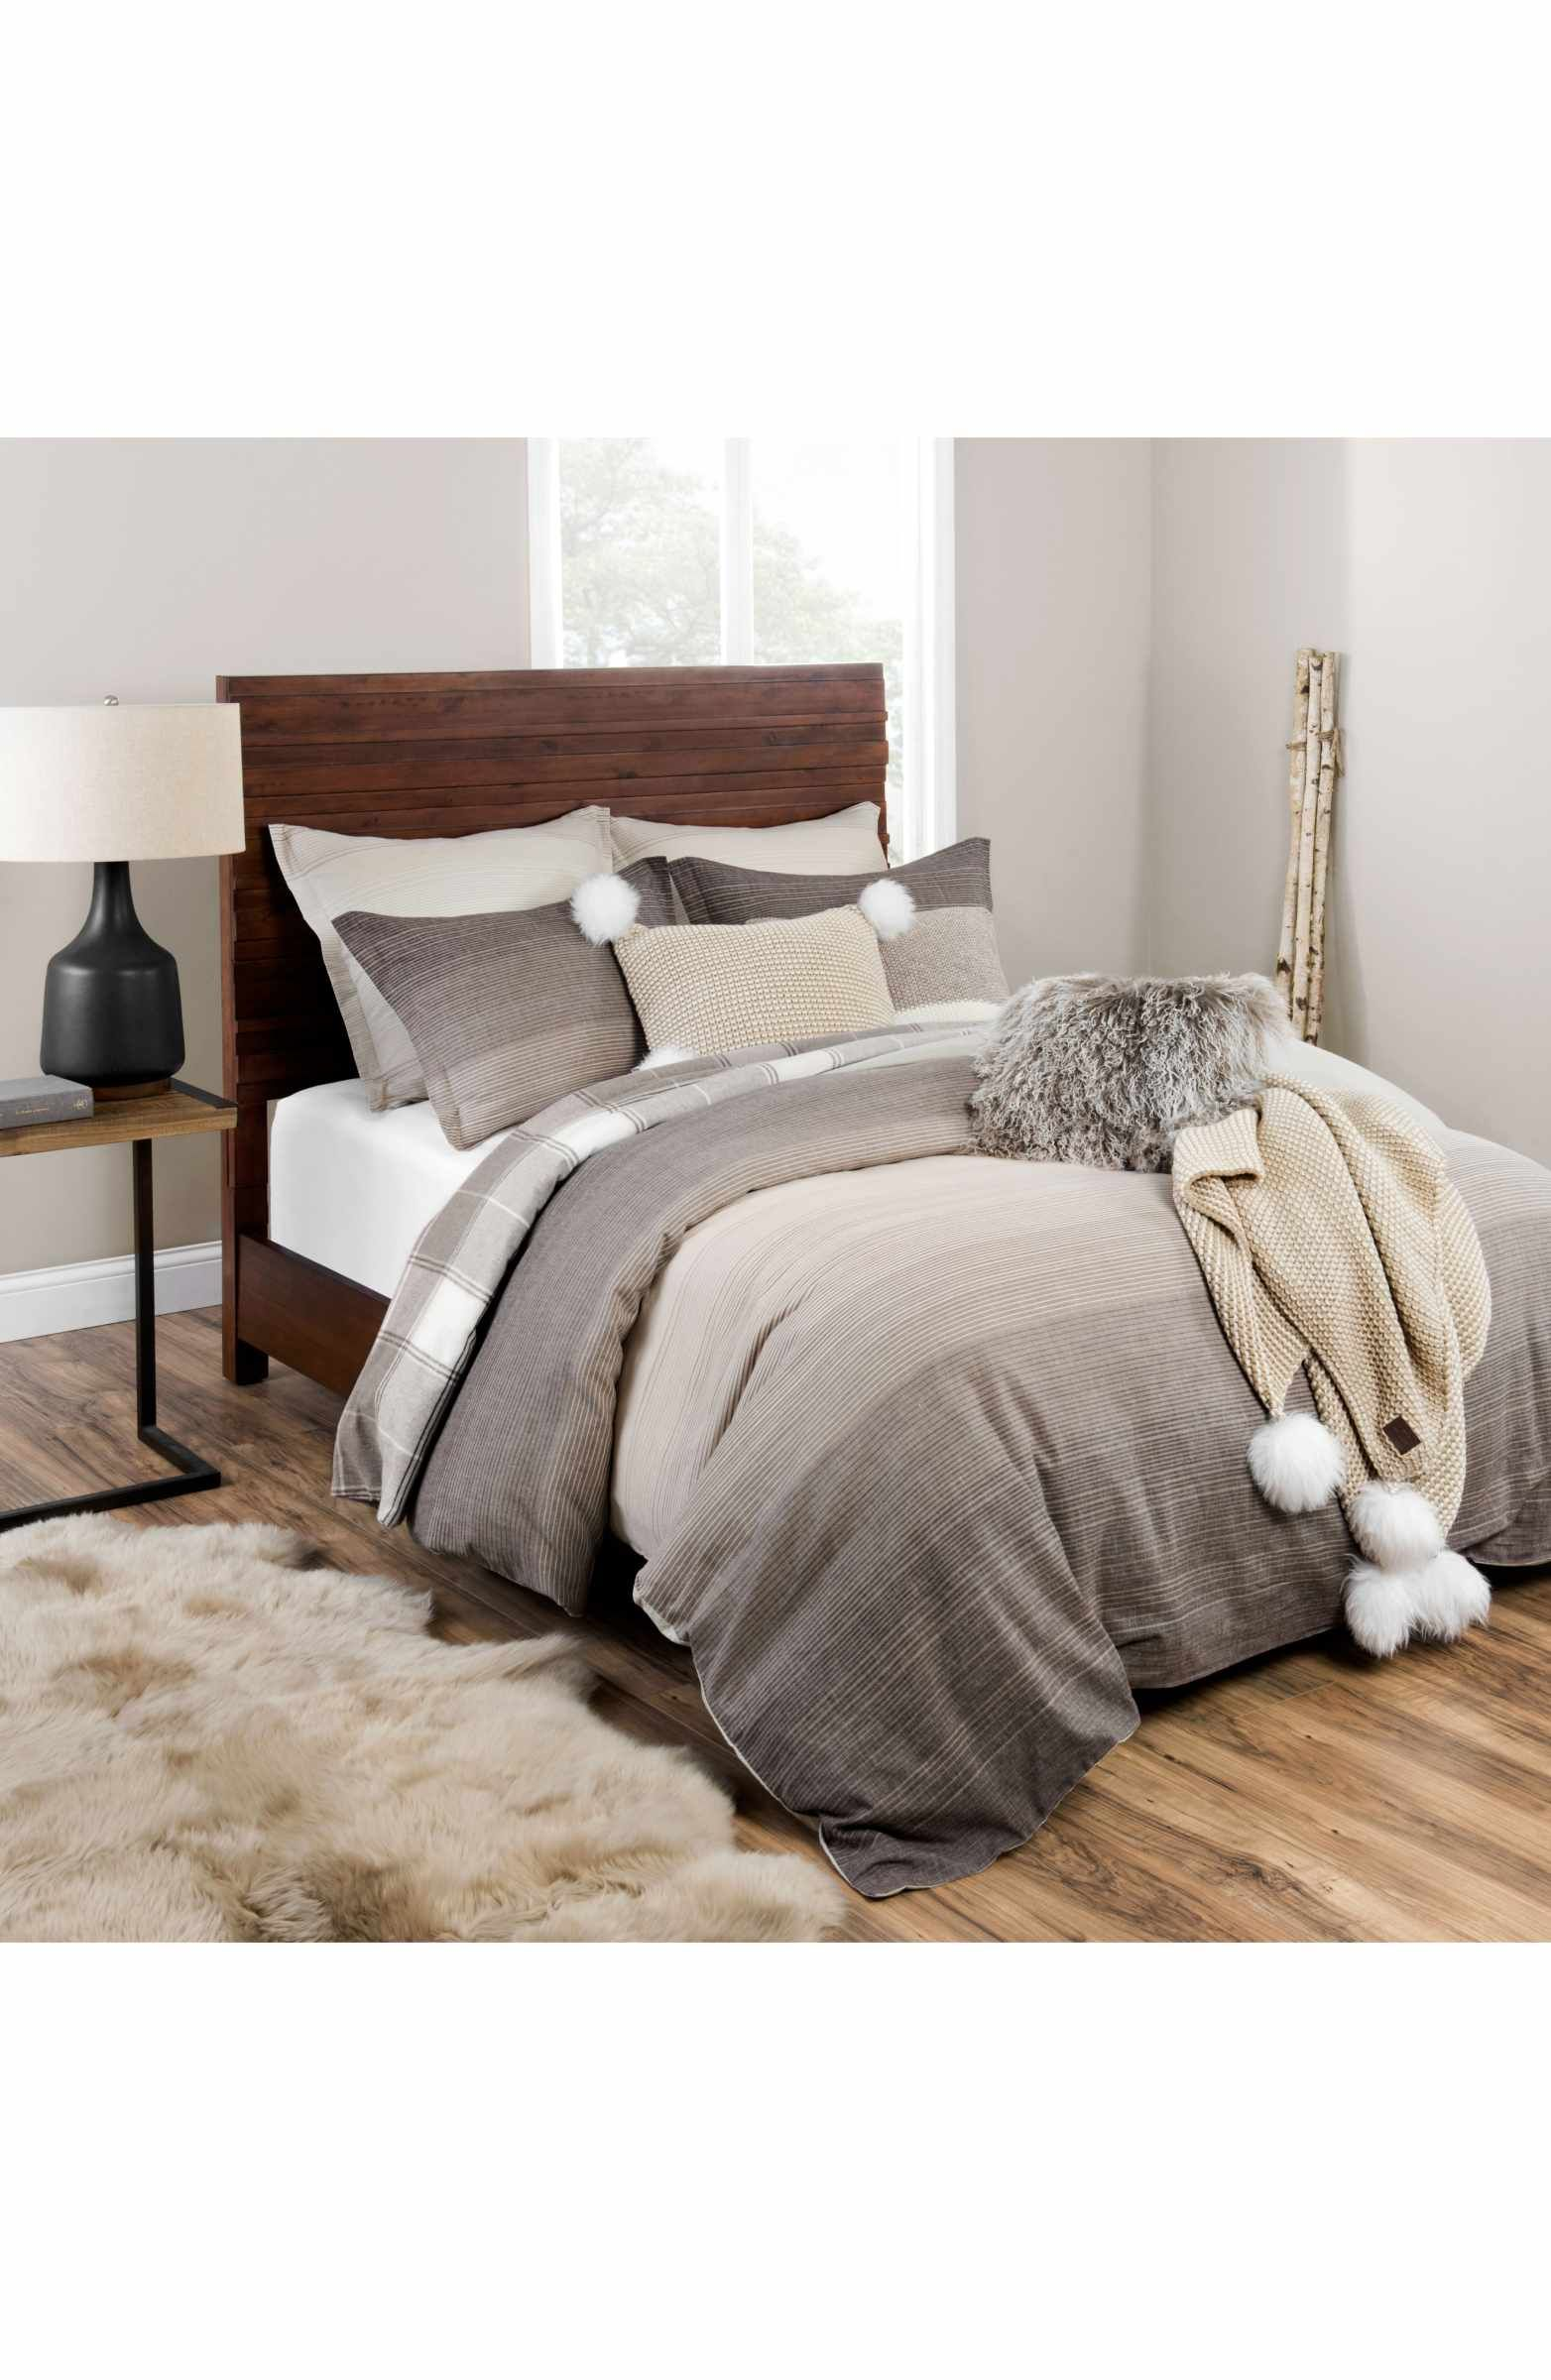 decoration comforters cheap set tahari and covers bedding sets gold for ideas wonderful king duvet using bed white bedroom collection luxury nordstrom comforter